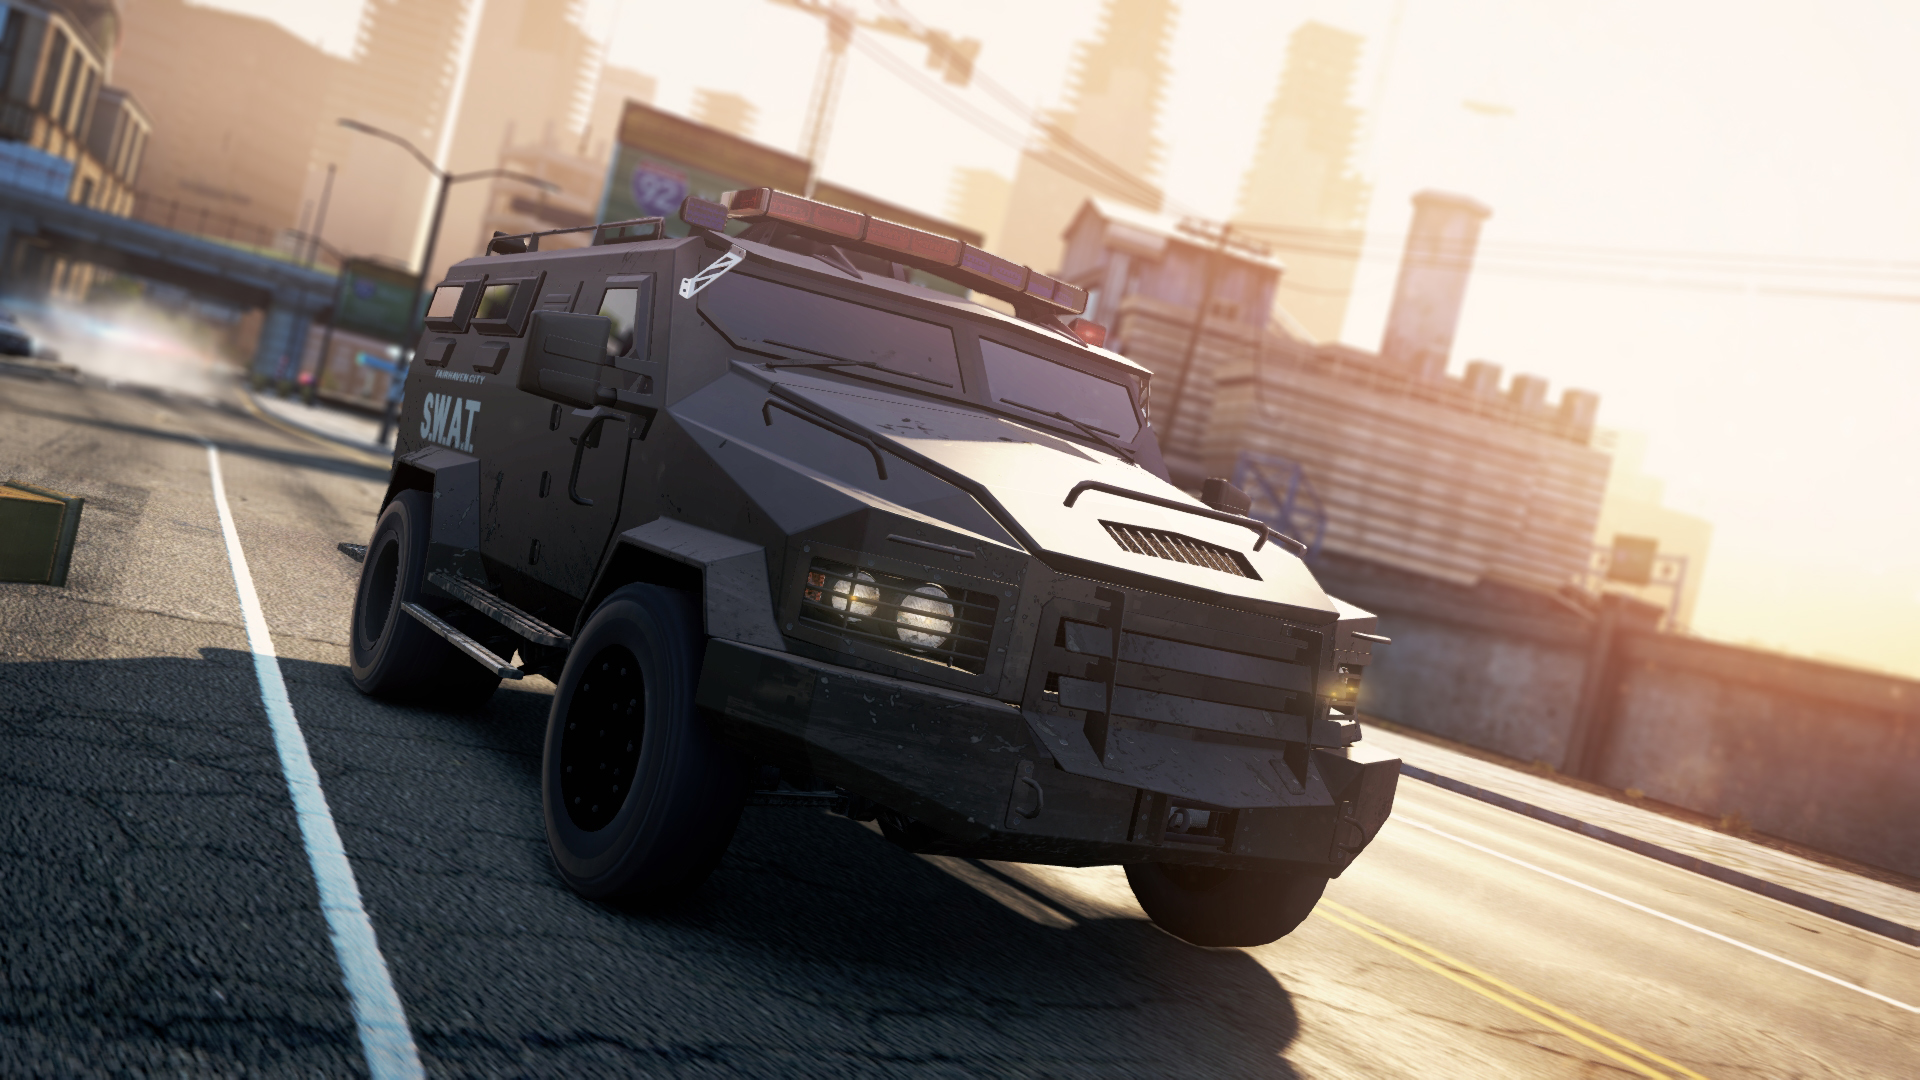 Swat Truck At The Need For Speed Wiki Need For Speed